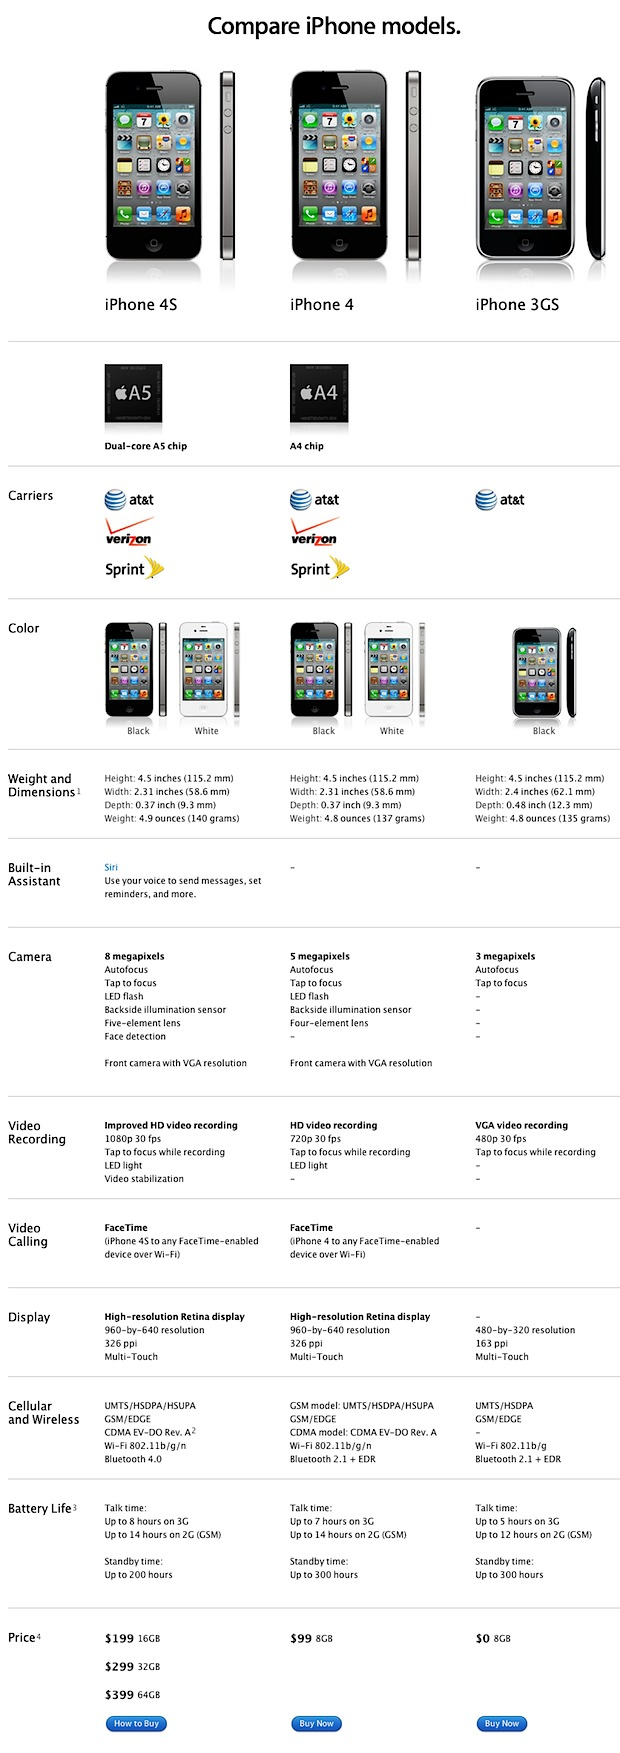 Compare iPhone 4S vs iPhone 4 vs iPhone 3GS